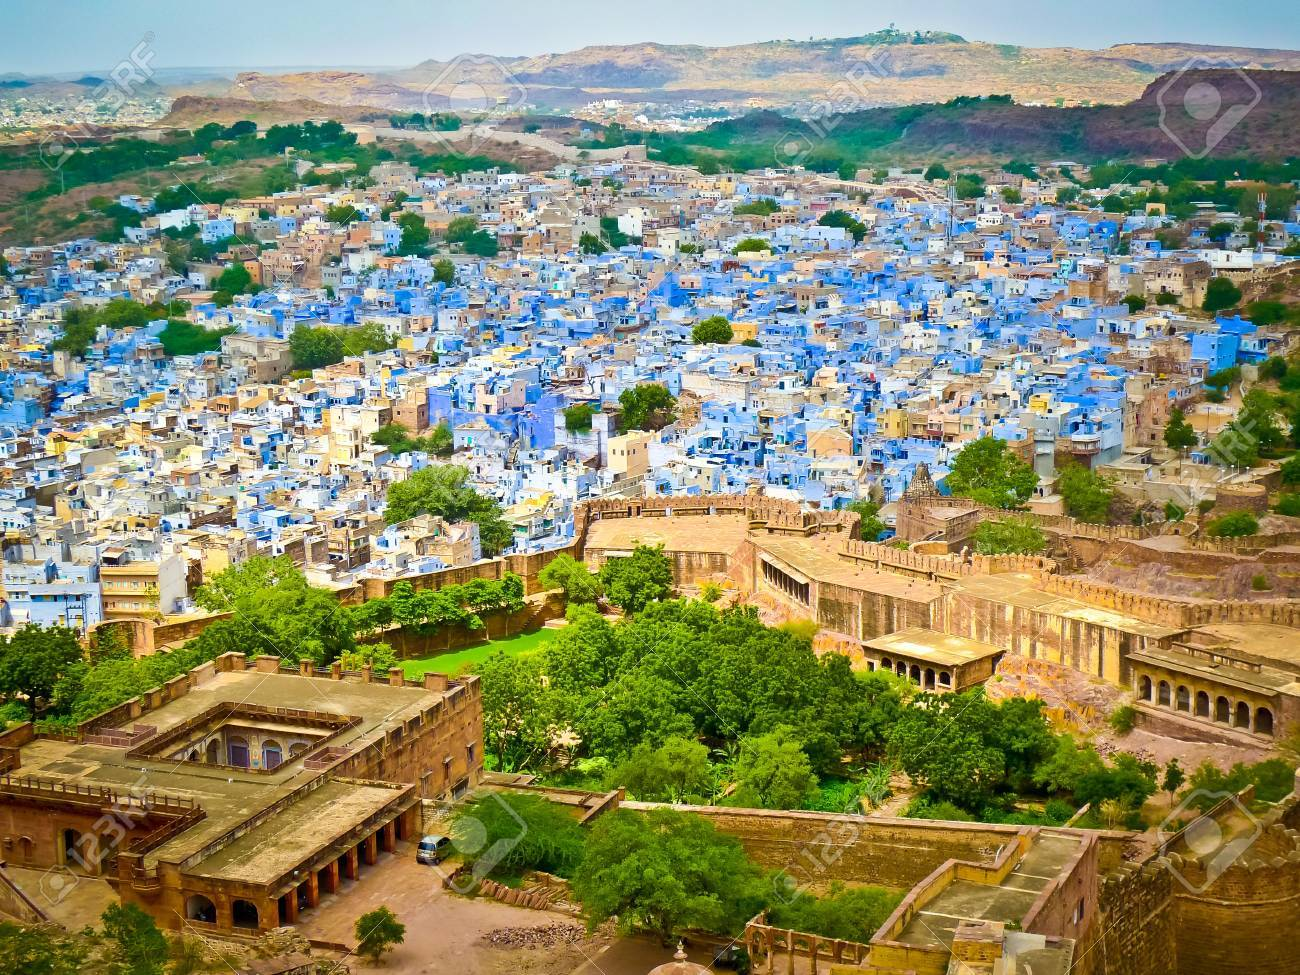 View of Jodhpur, the Blue City, from Mehrangarh Fort, Rajasthan, India Standard-Bild - 18537166